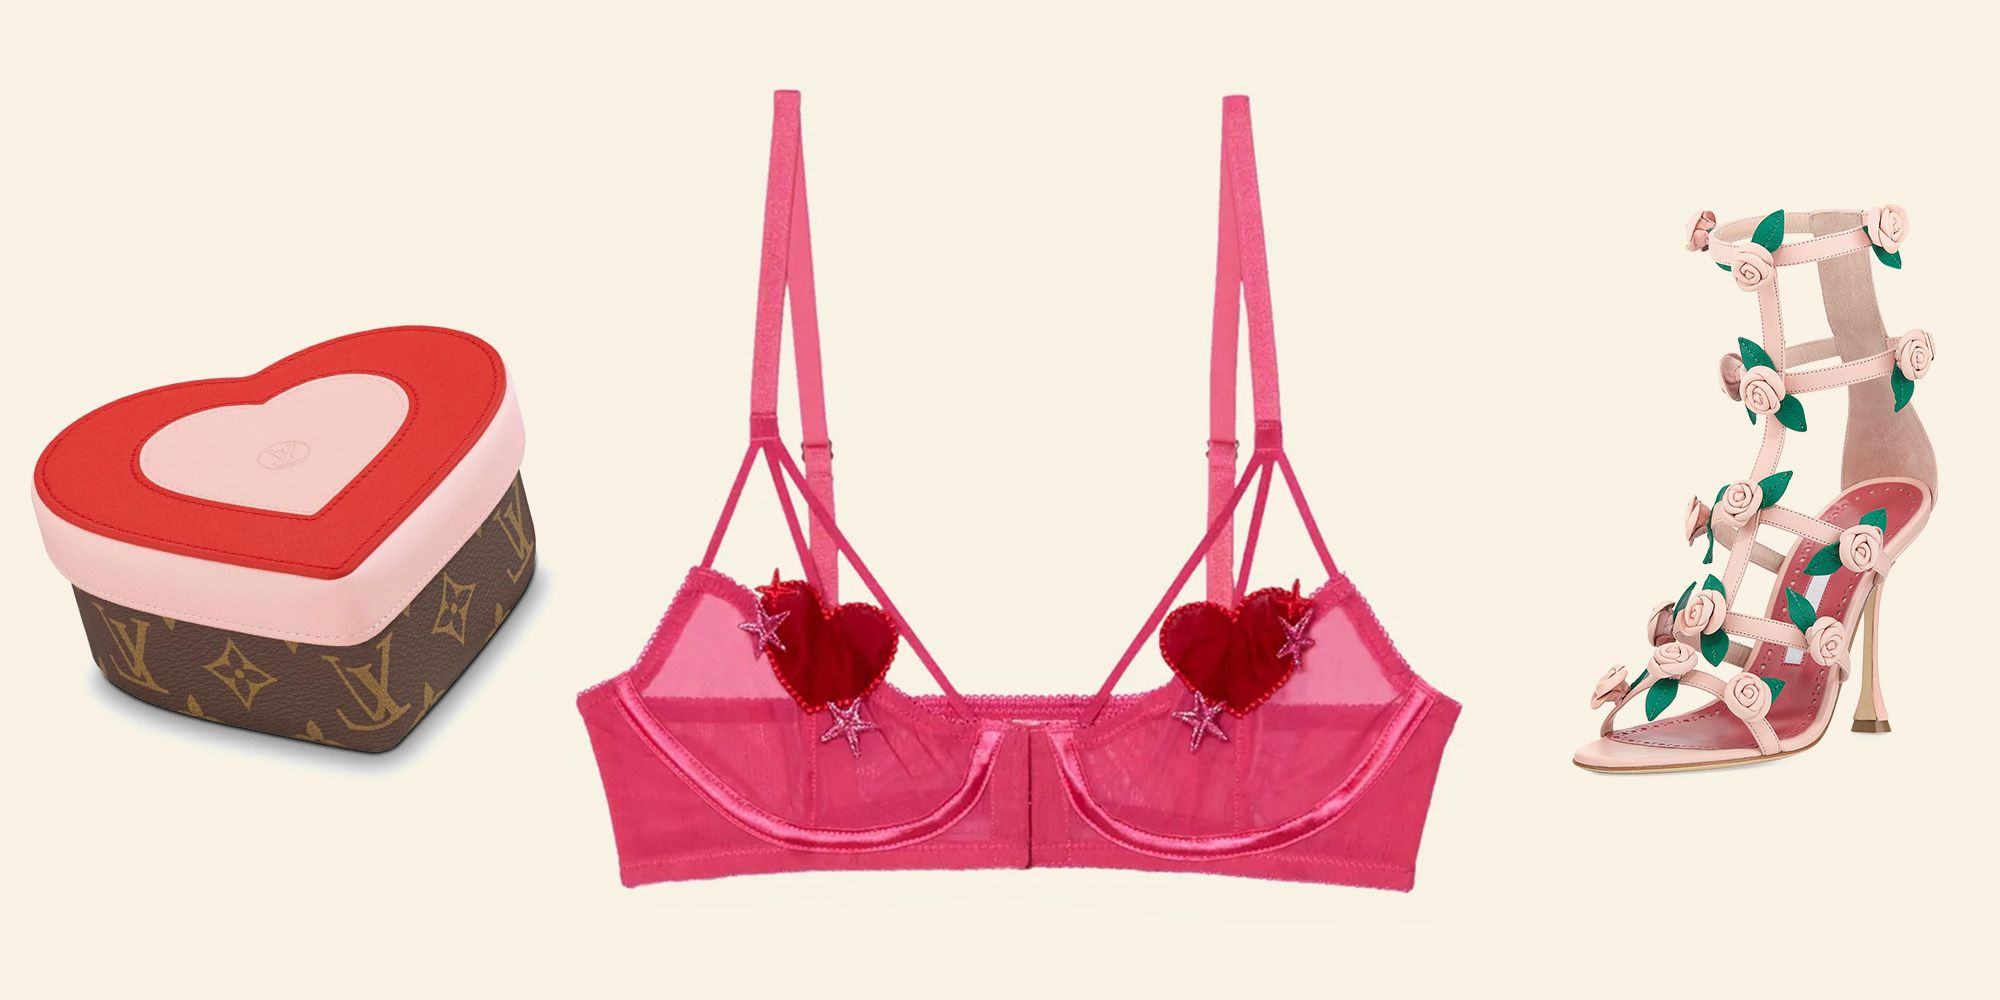 10 Valentine's Day Gifts She'll Love More Than Flowers